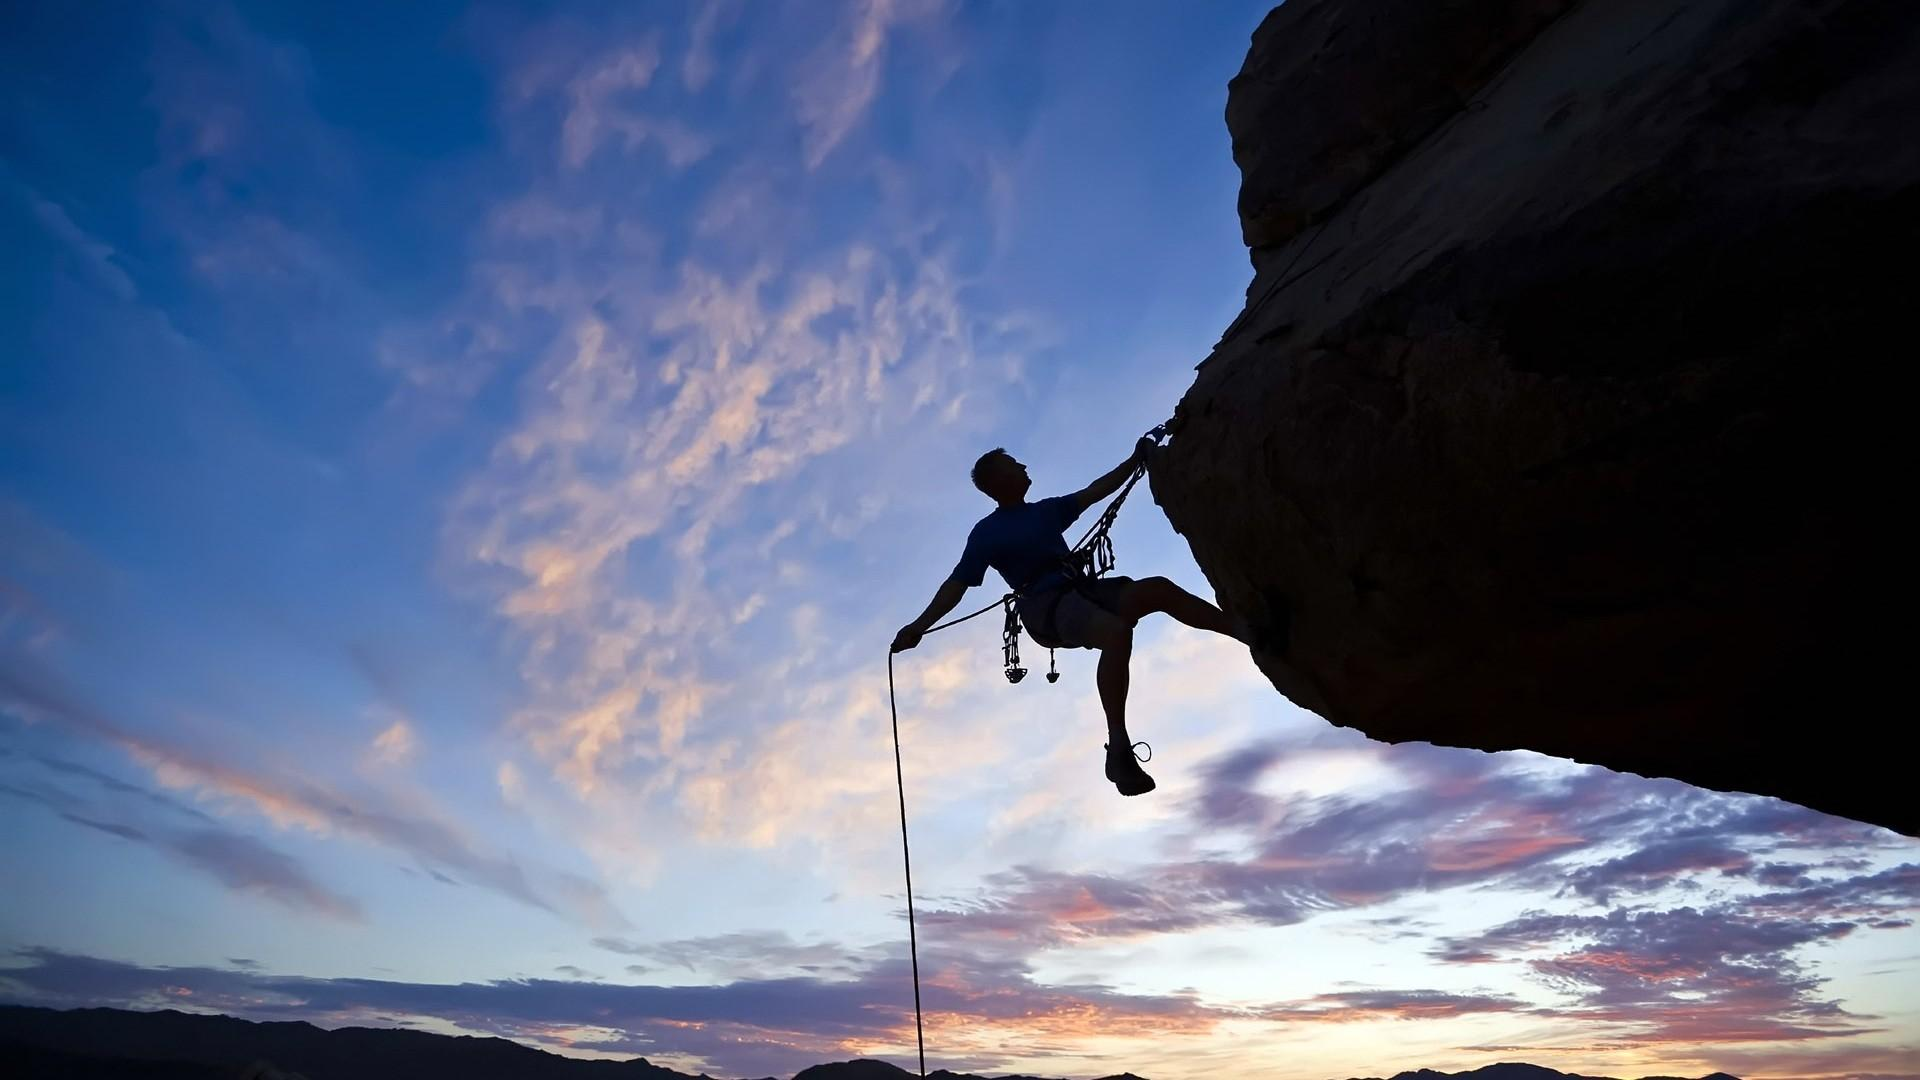 Courage isn't about being fearless. It's about overcoming your fears. - Unknown